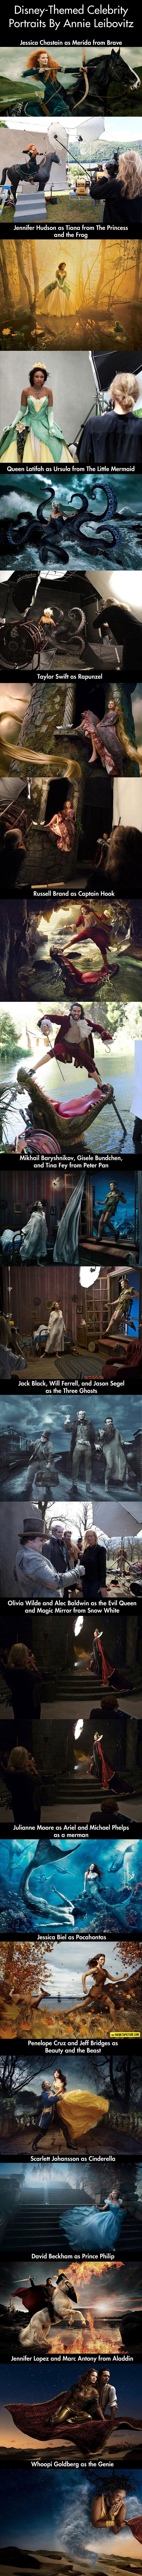 cool-Disney-dream-photo-manipulation-movies